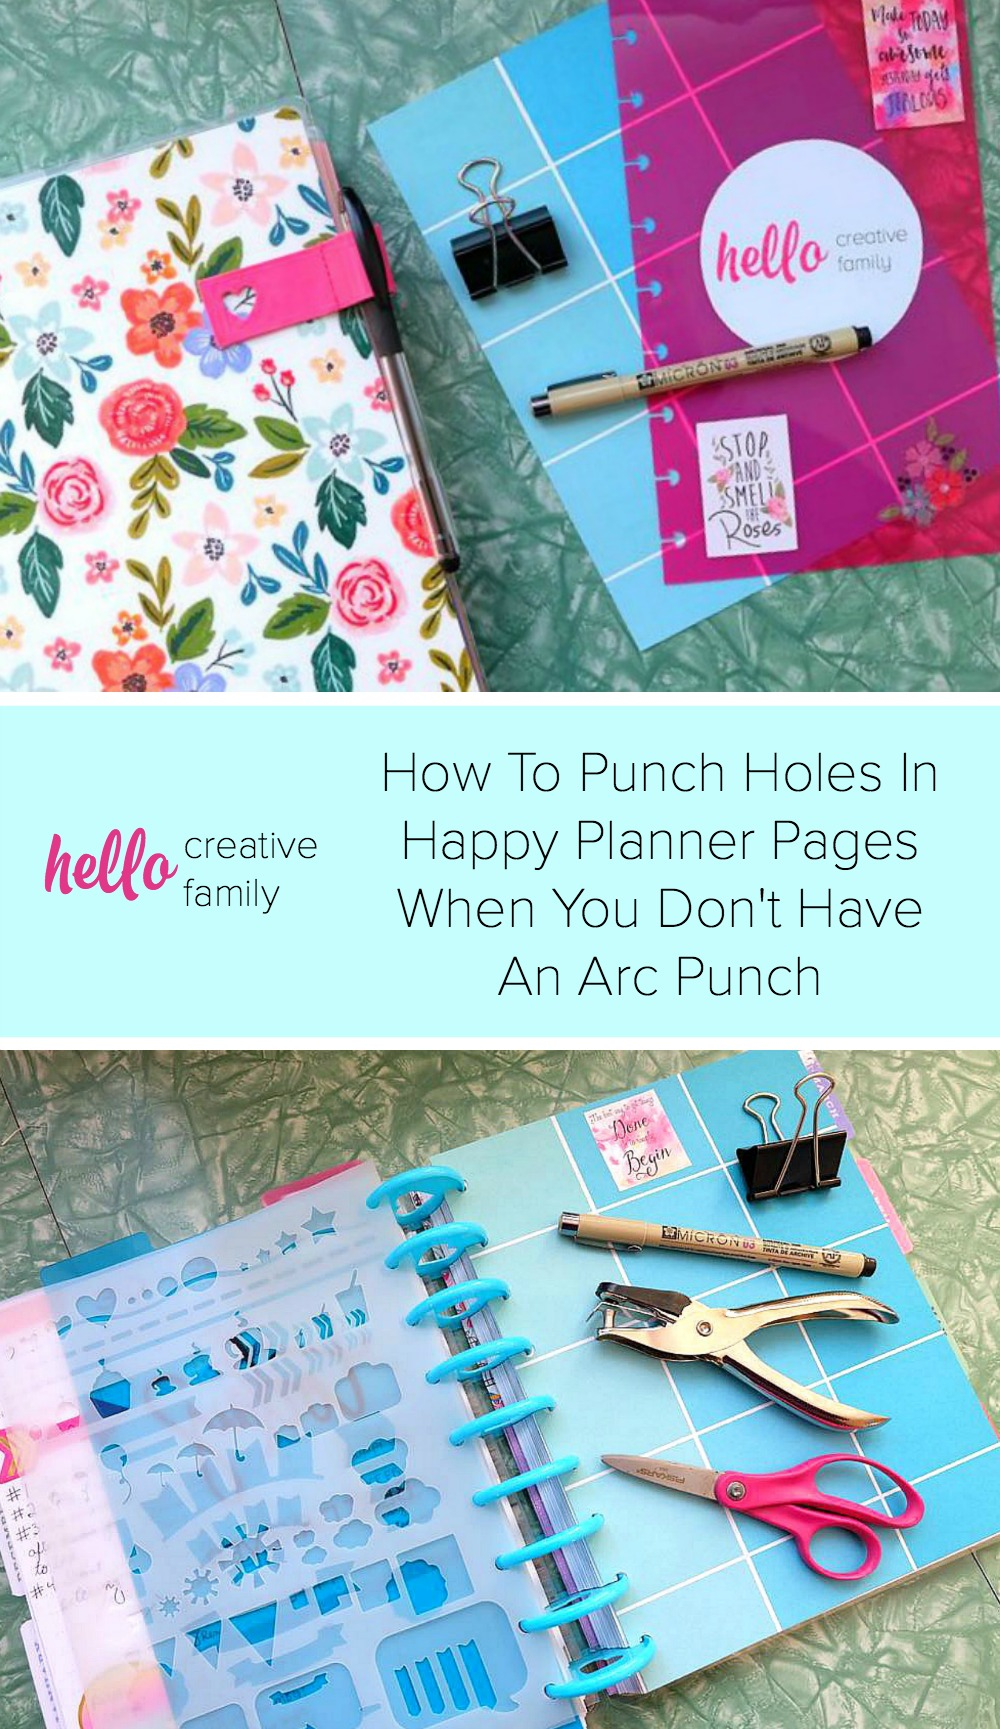 How To Punch Holes In Happy Planner Pages When You Dont Have An Arc